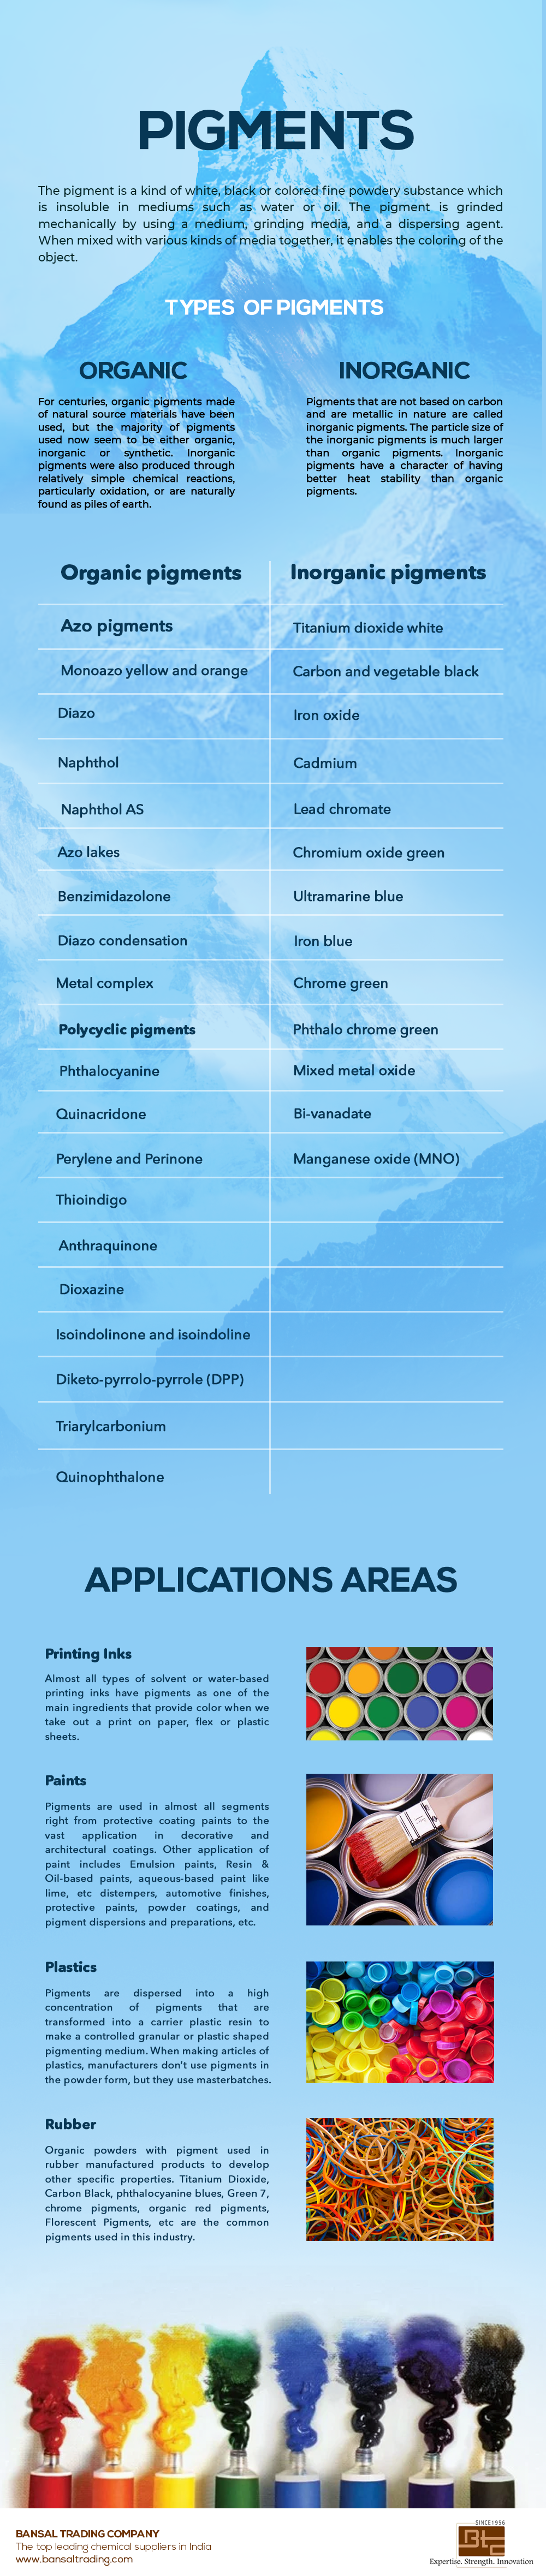 Different Types of Pigments Infographic